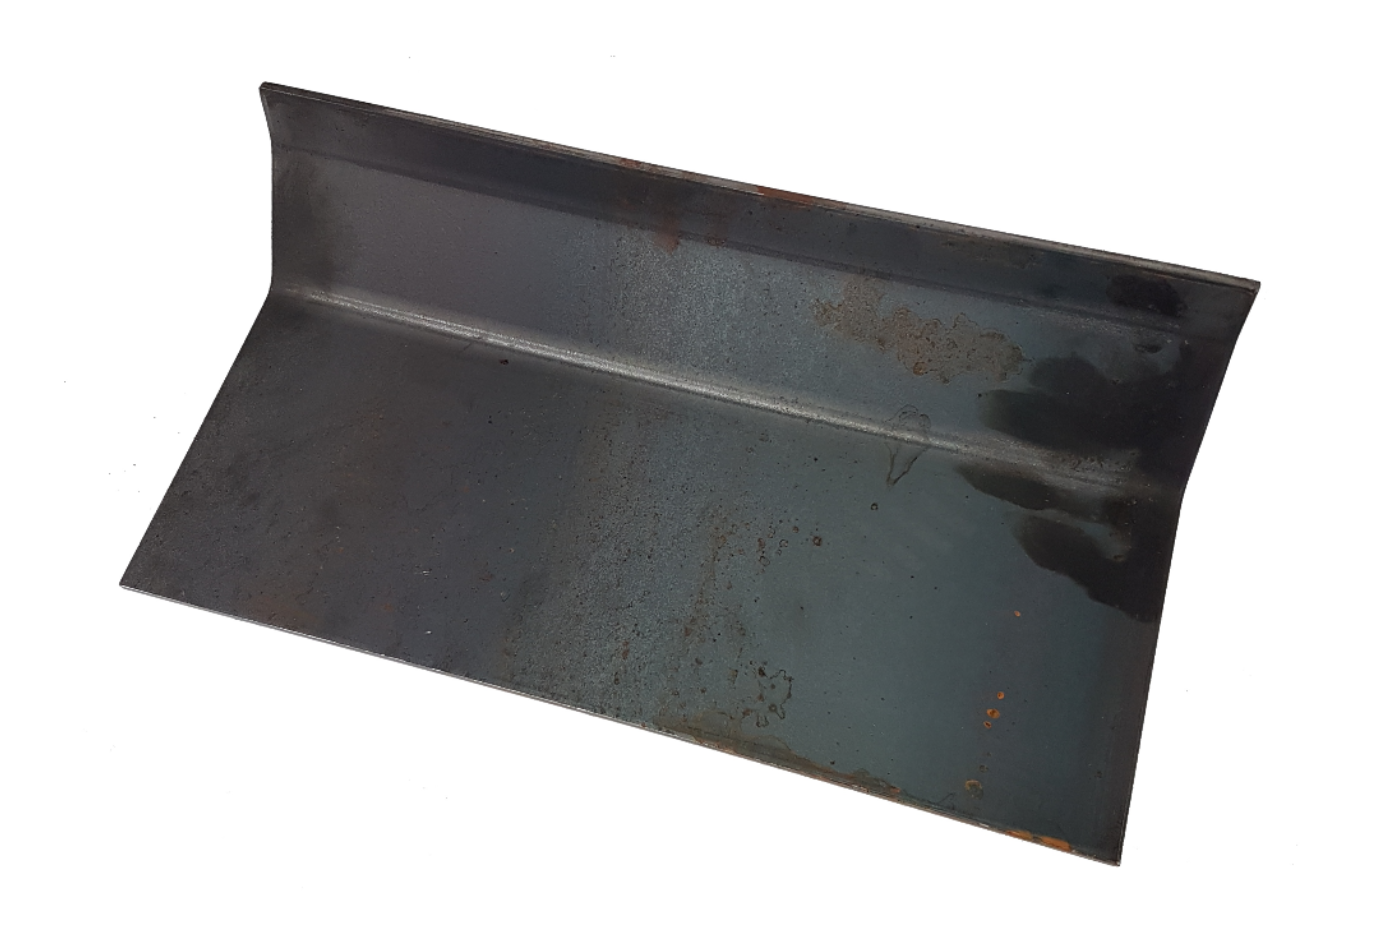 A replacement Baffle suitable for Stovax View 5 Midline Woodburning MK2 stoves.